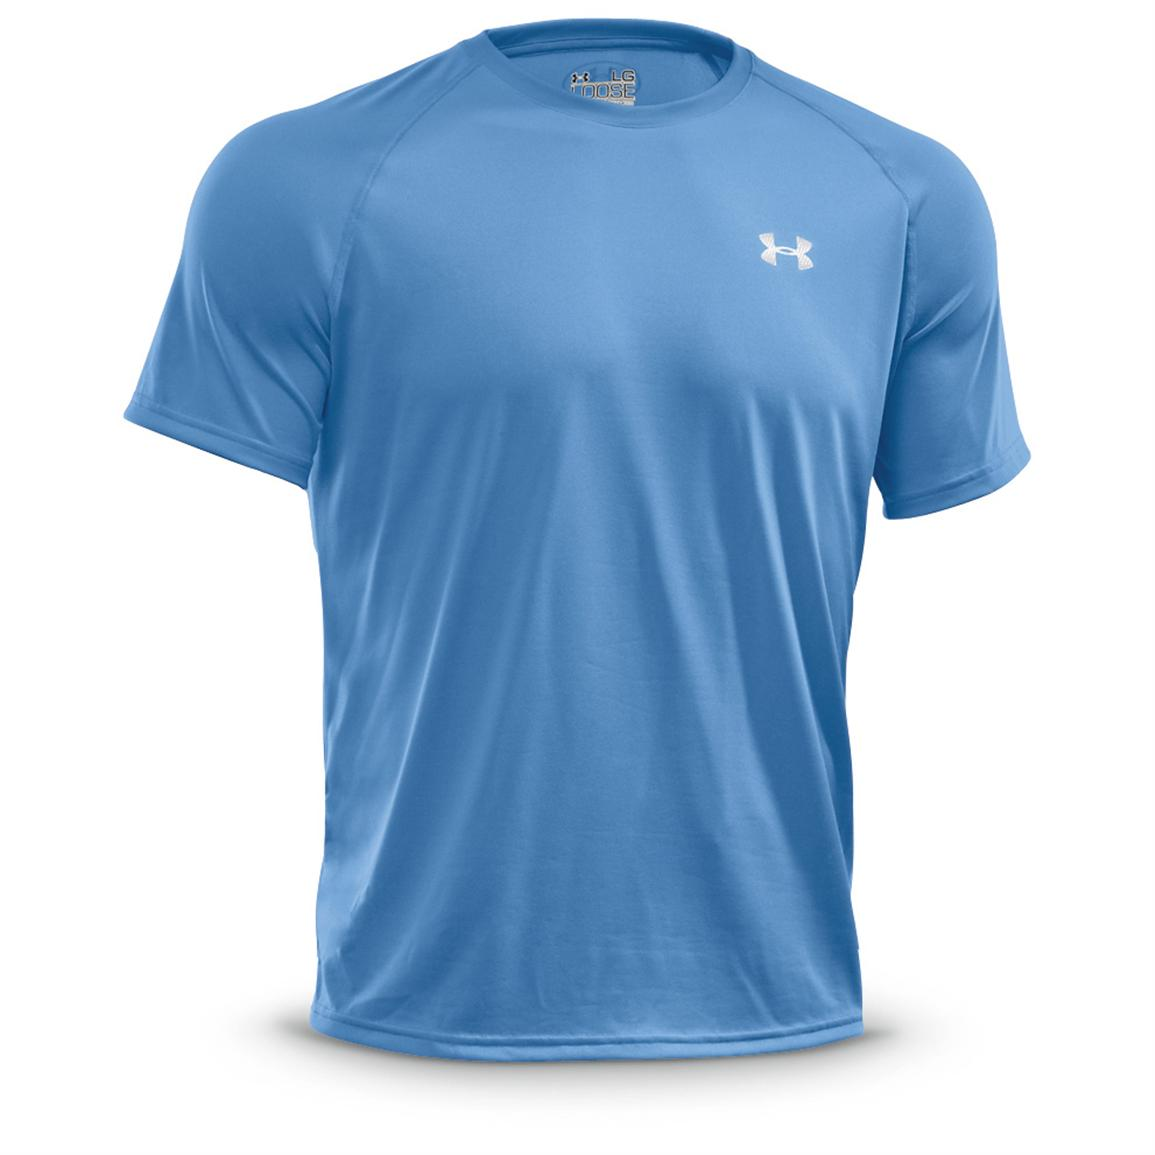 Under Armour Men's Tech Short-sleeved T-Shirt, Carolina Blue